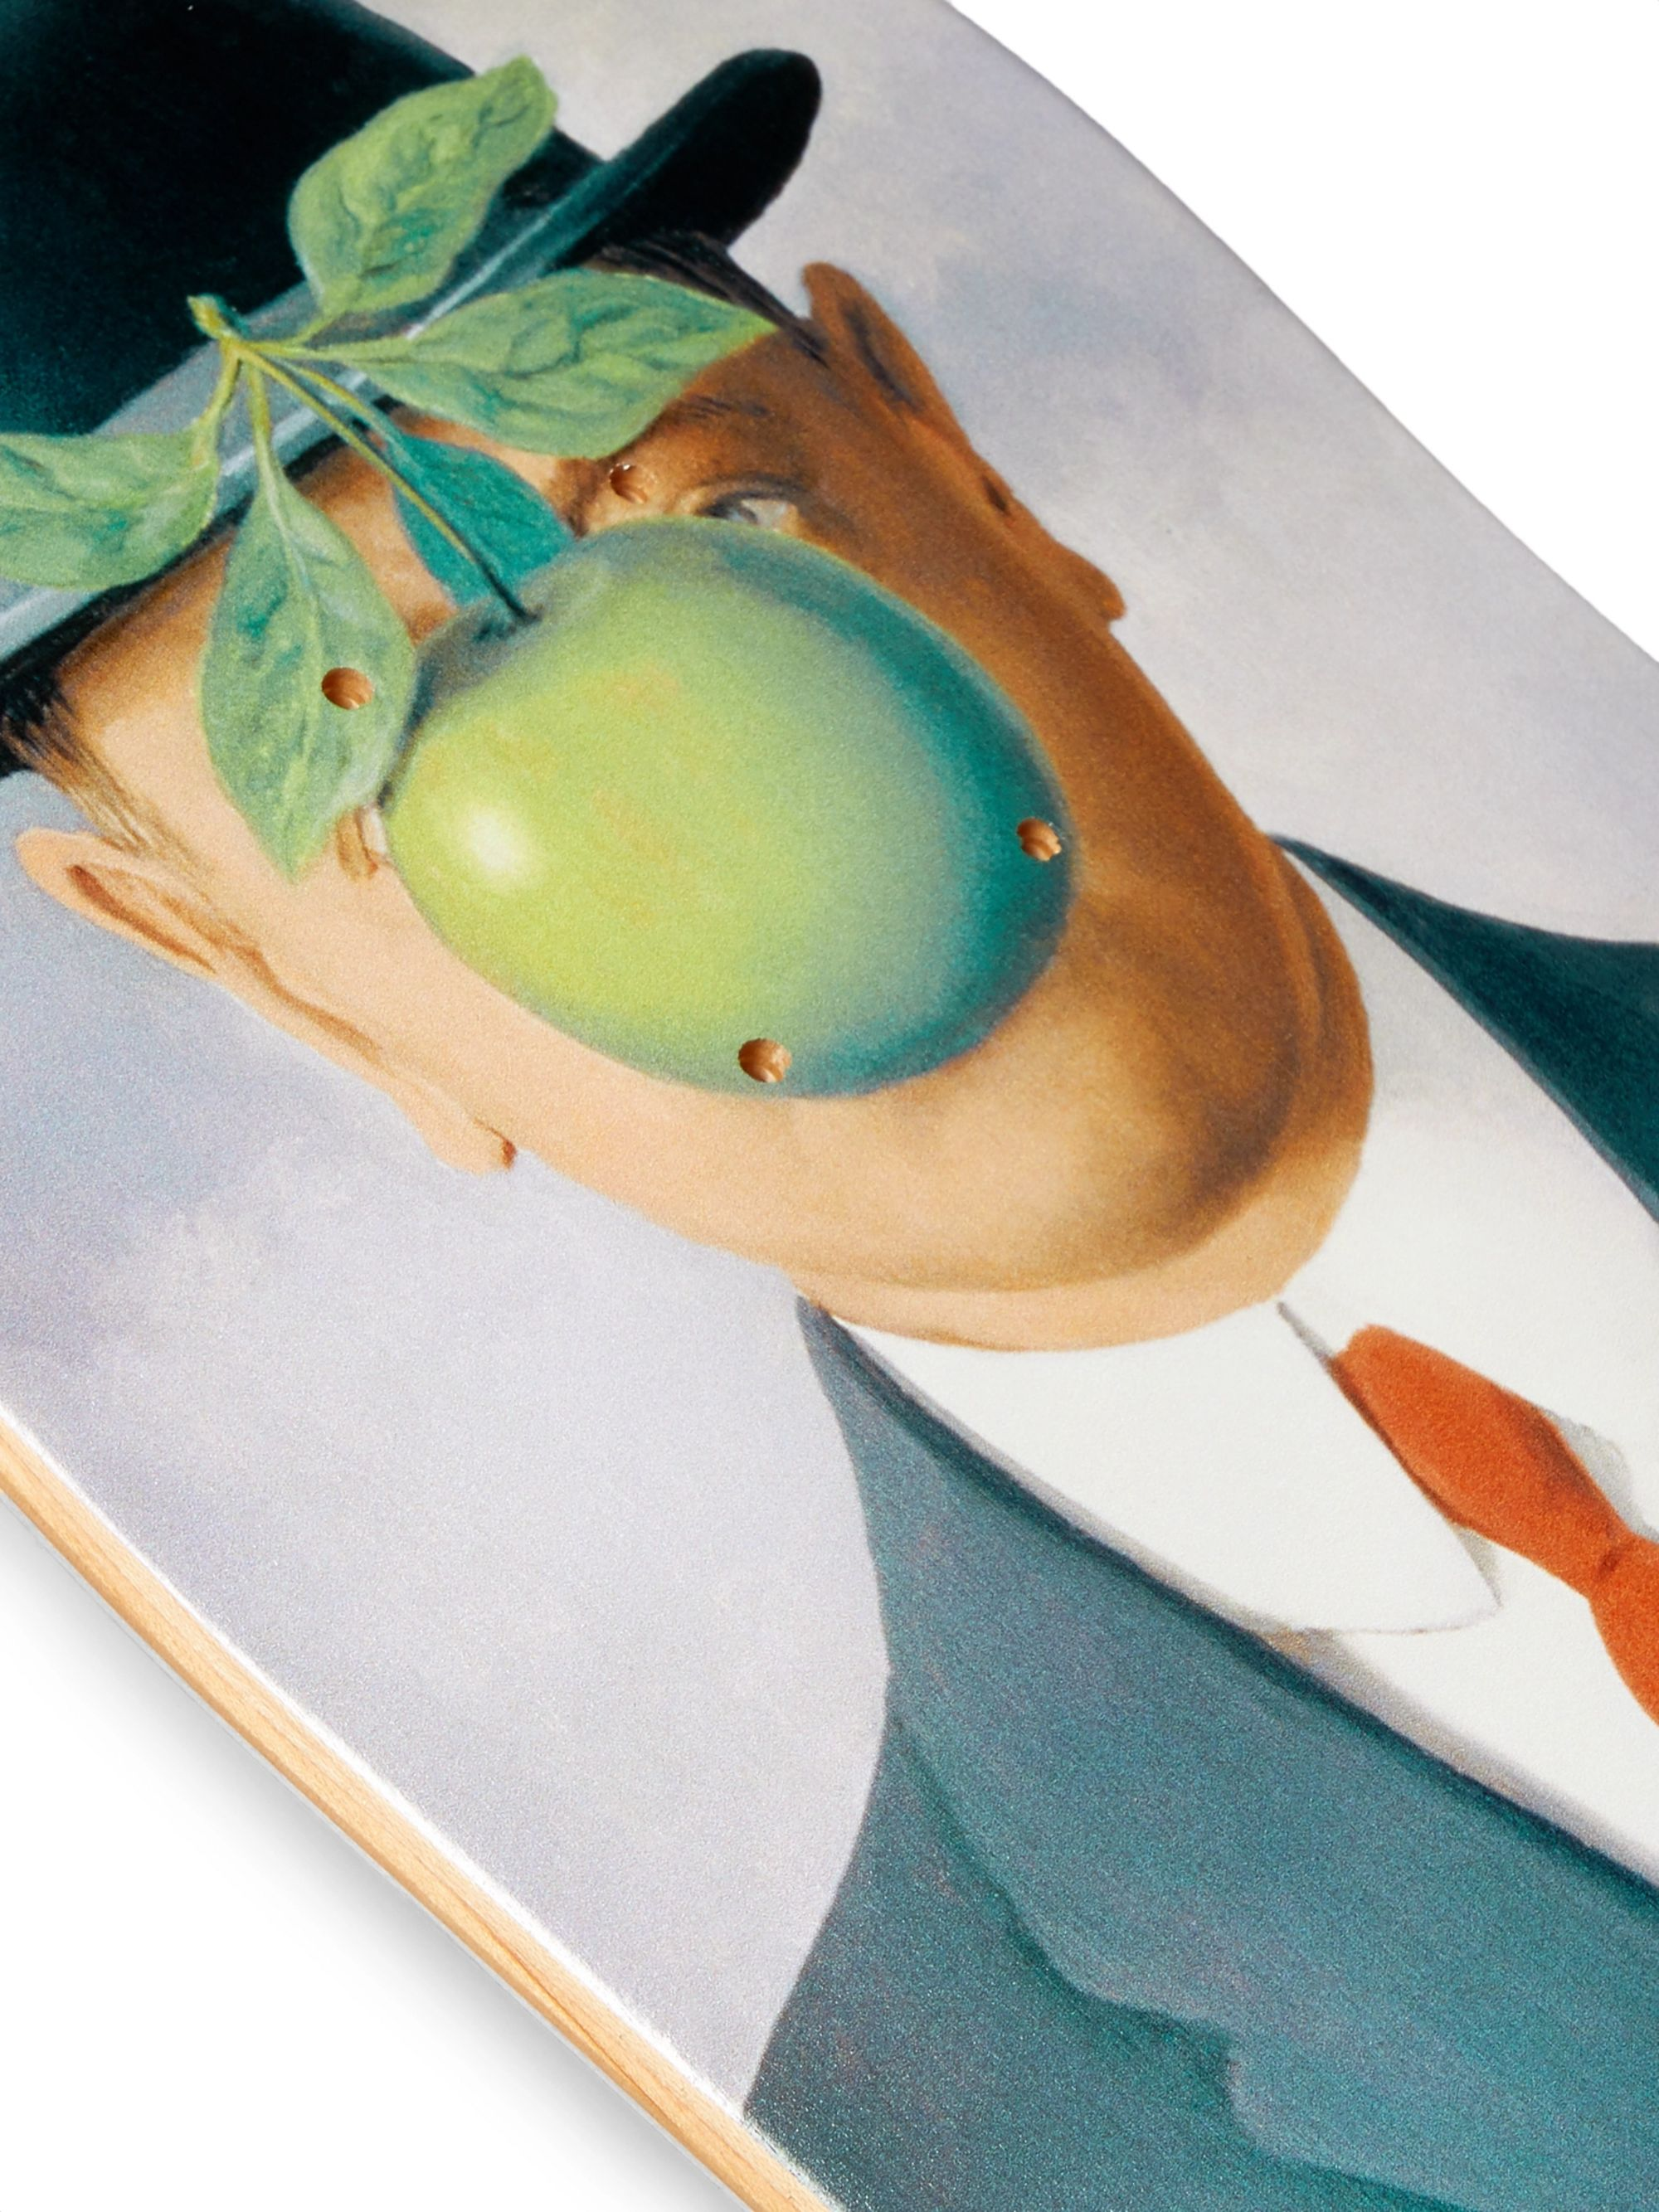 The SkateRoom + René Magritte Printed Wooden Skateboard